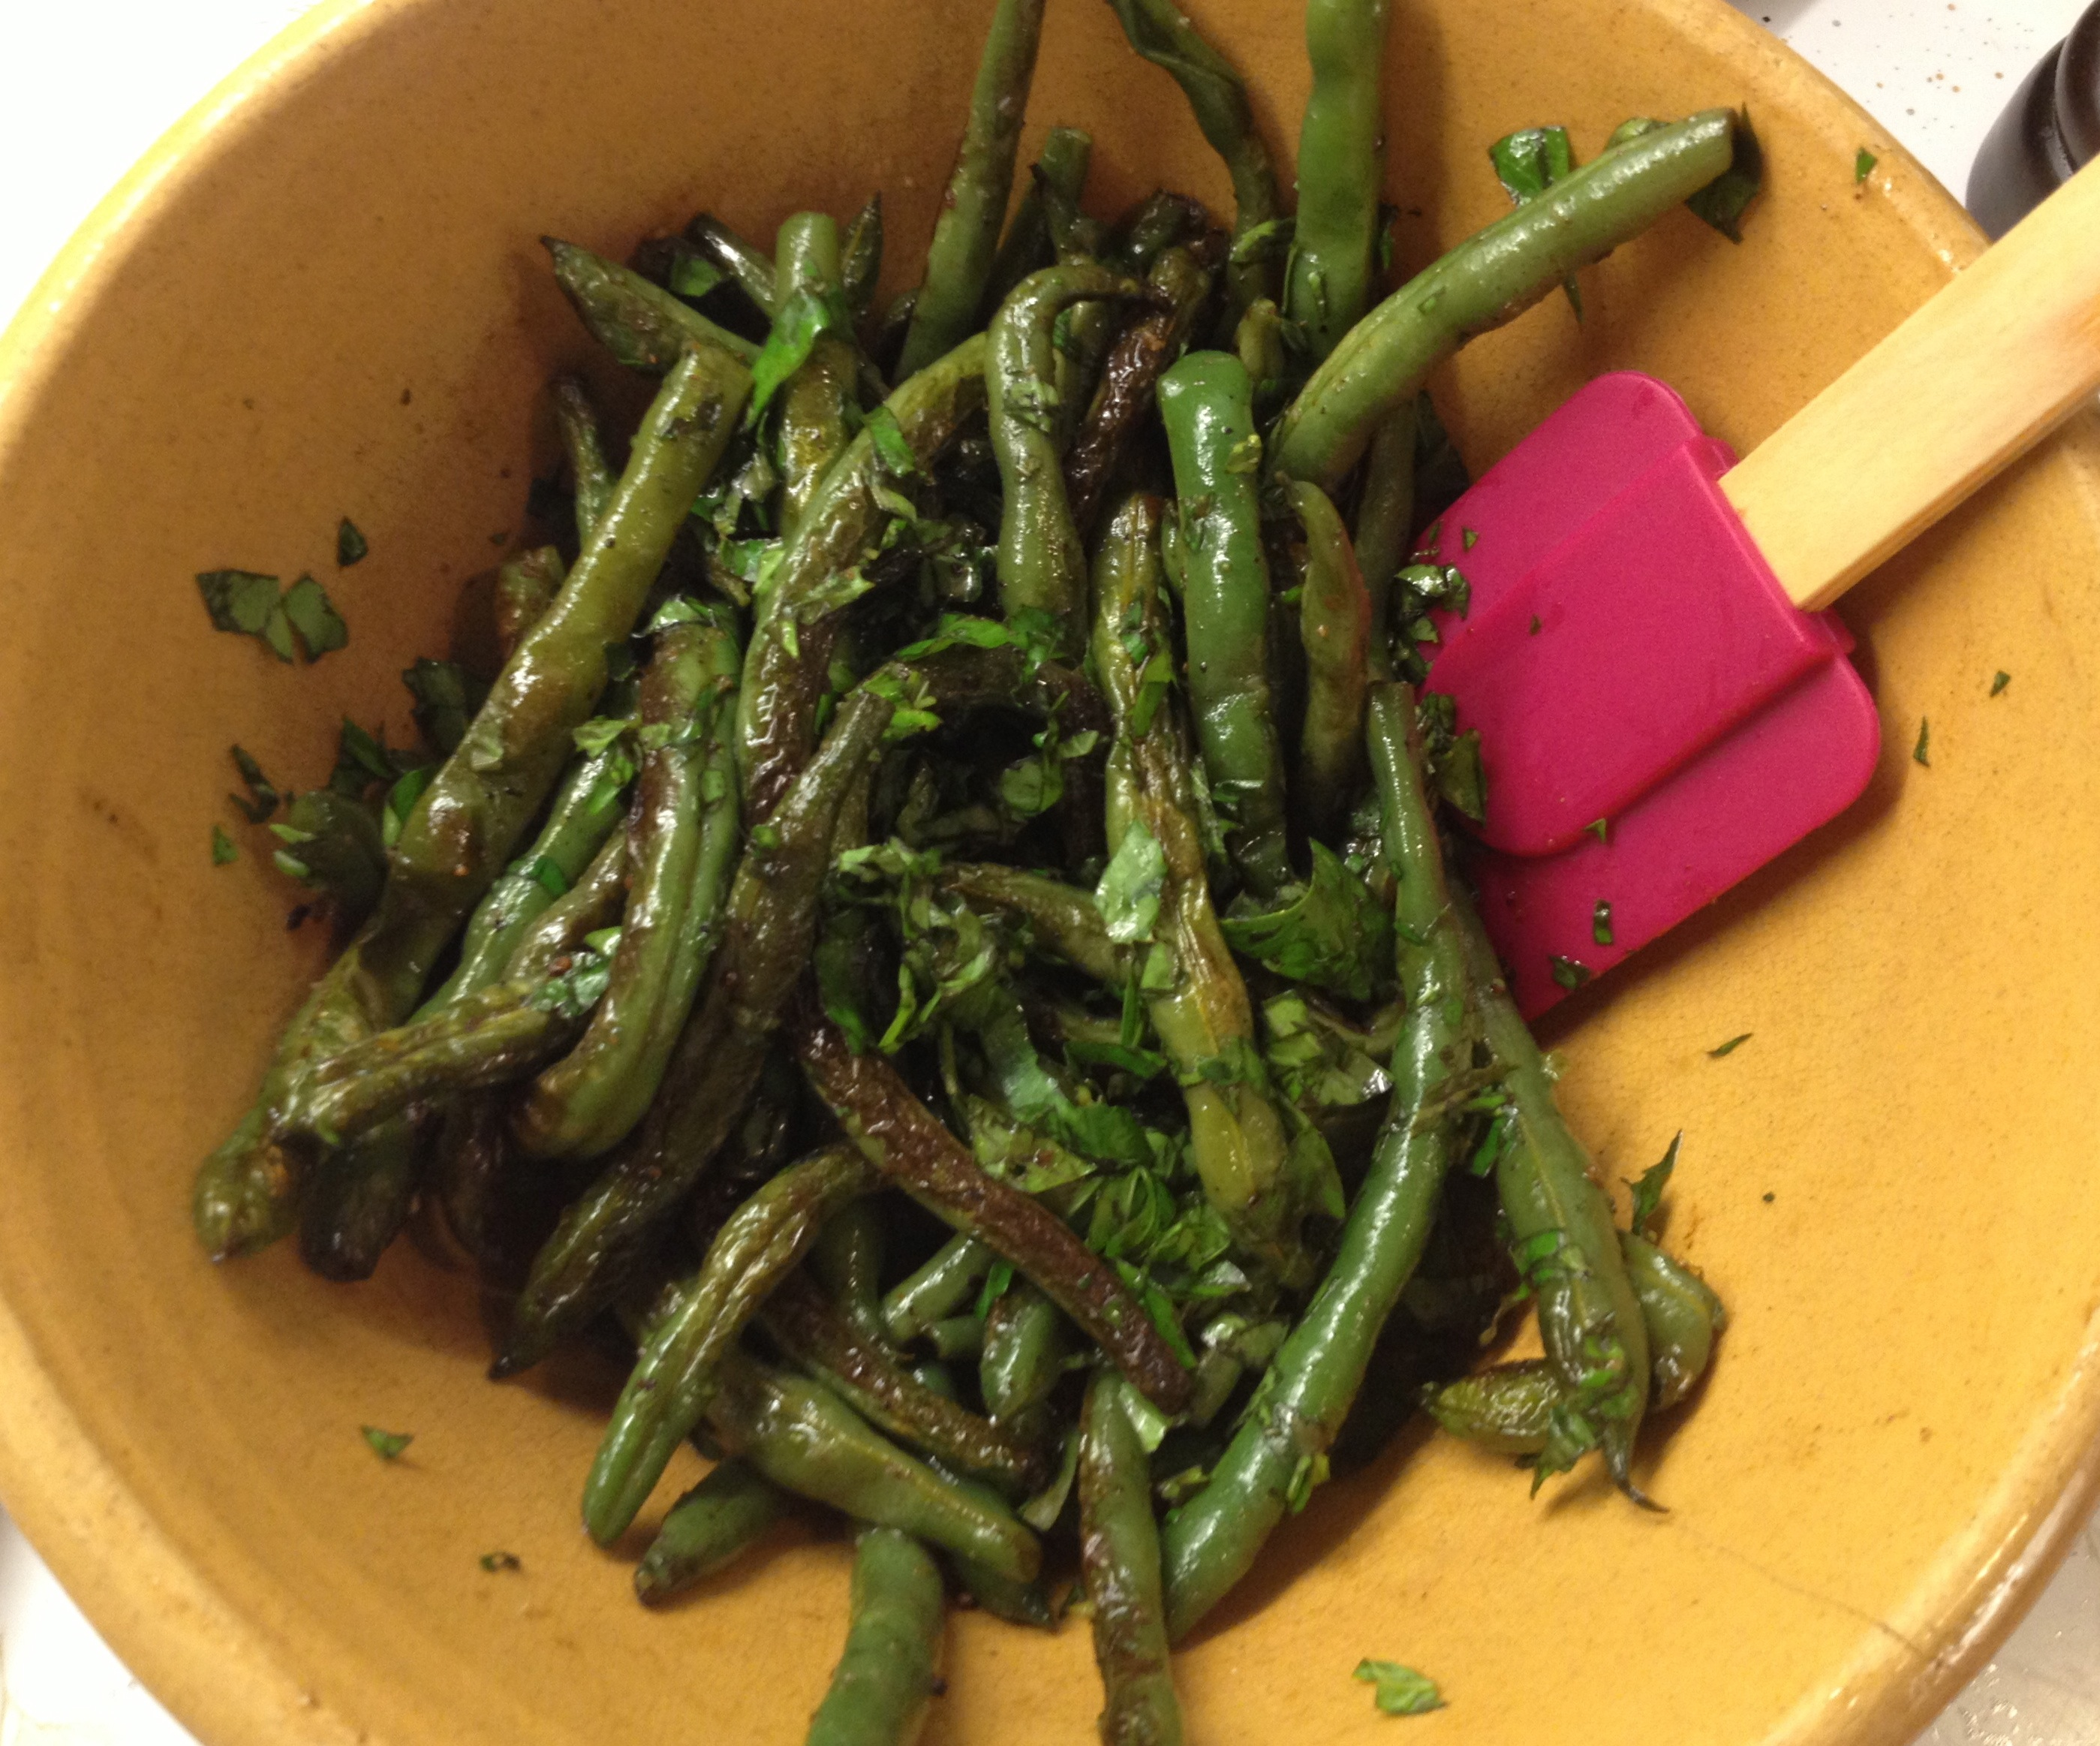 Green bean recipe using fresh basil in a yellow ware bowl with a maroon spatula.